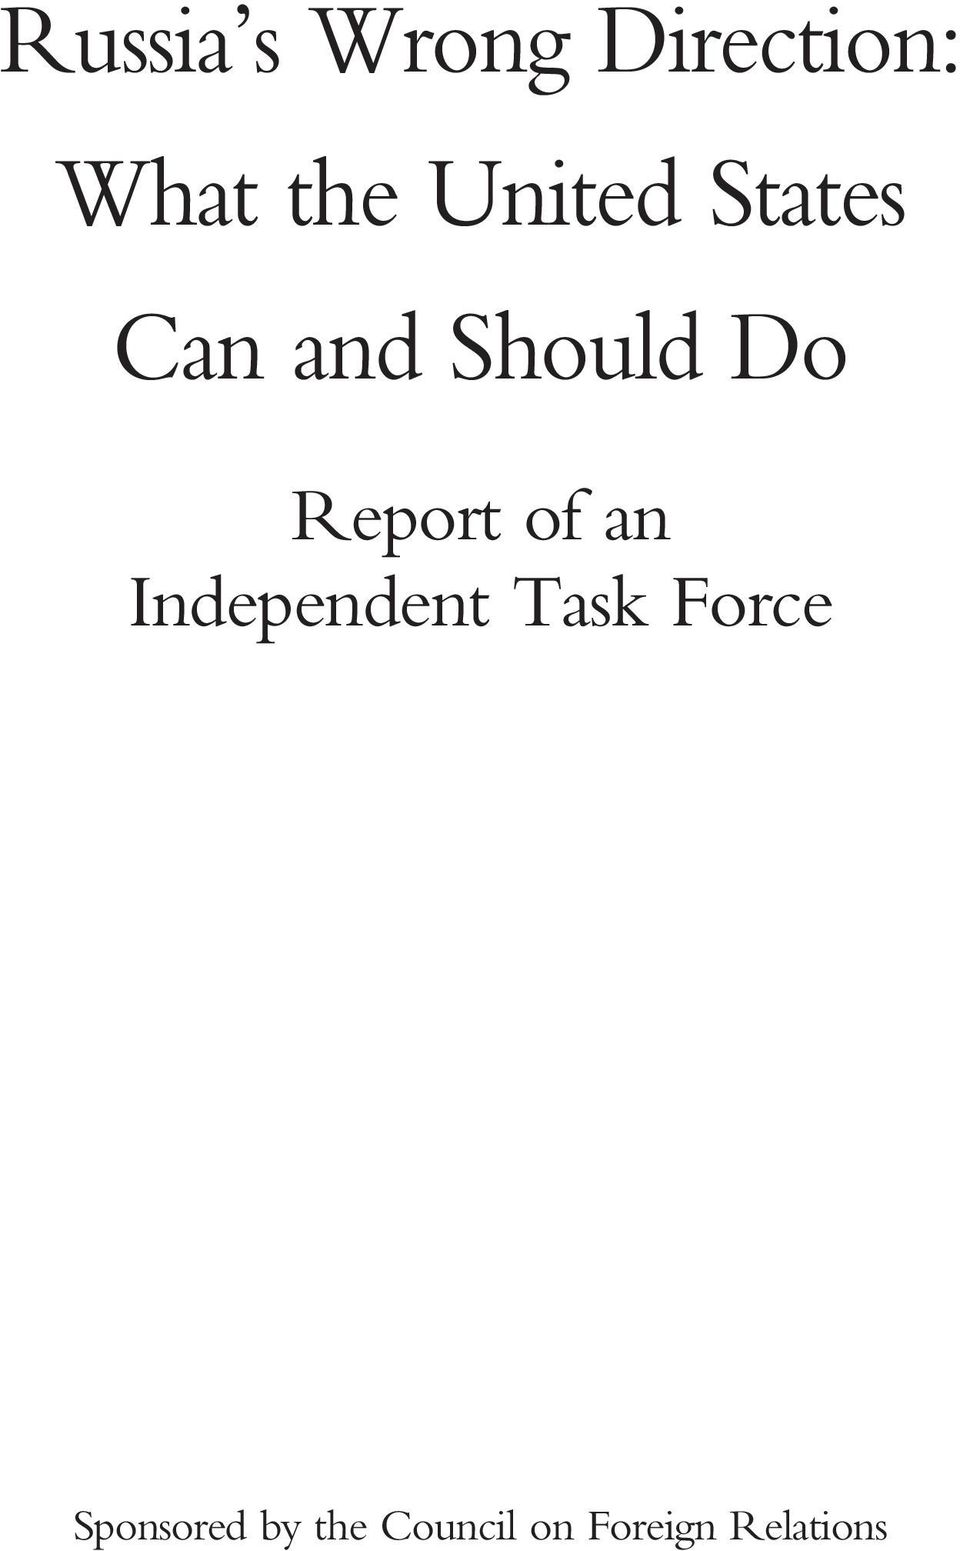 Report of an Independent Task Force